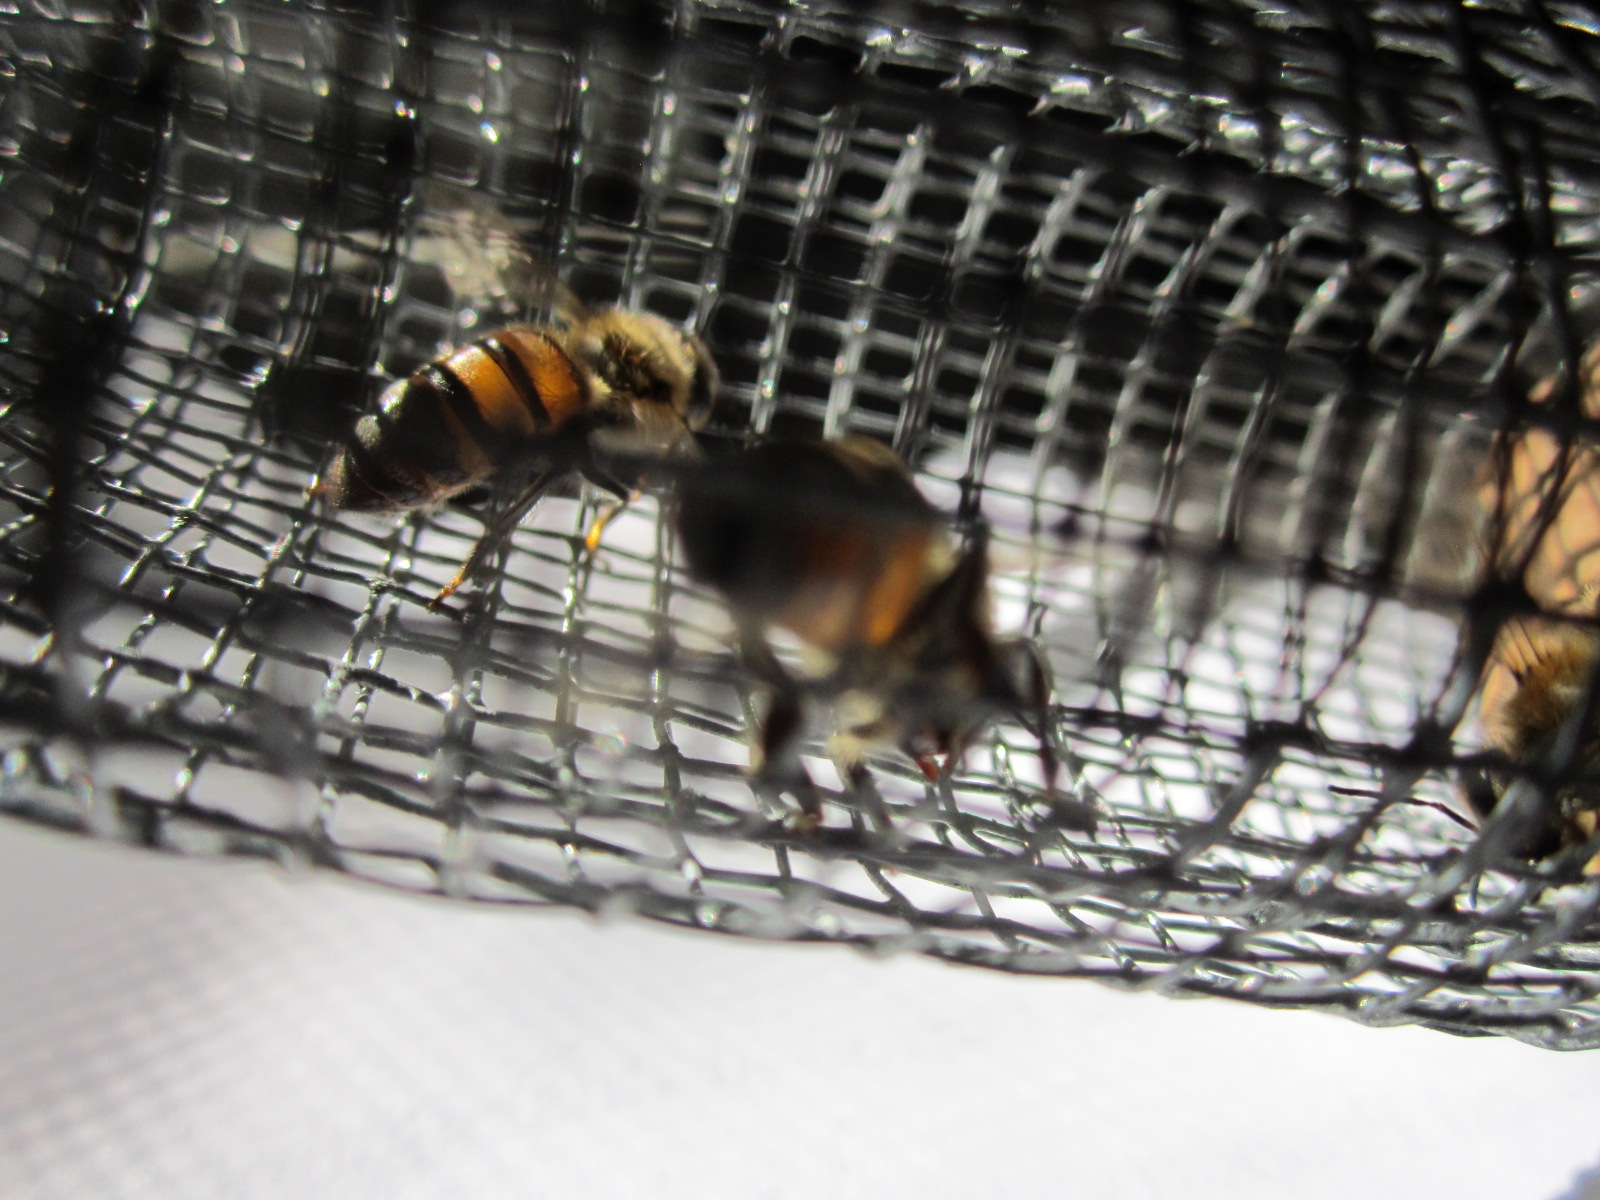 Fed bees in queen cage - control group